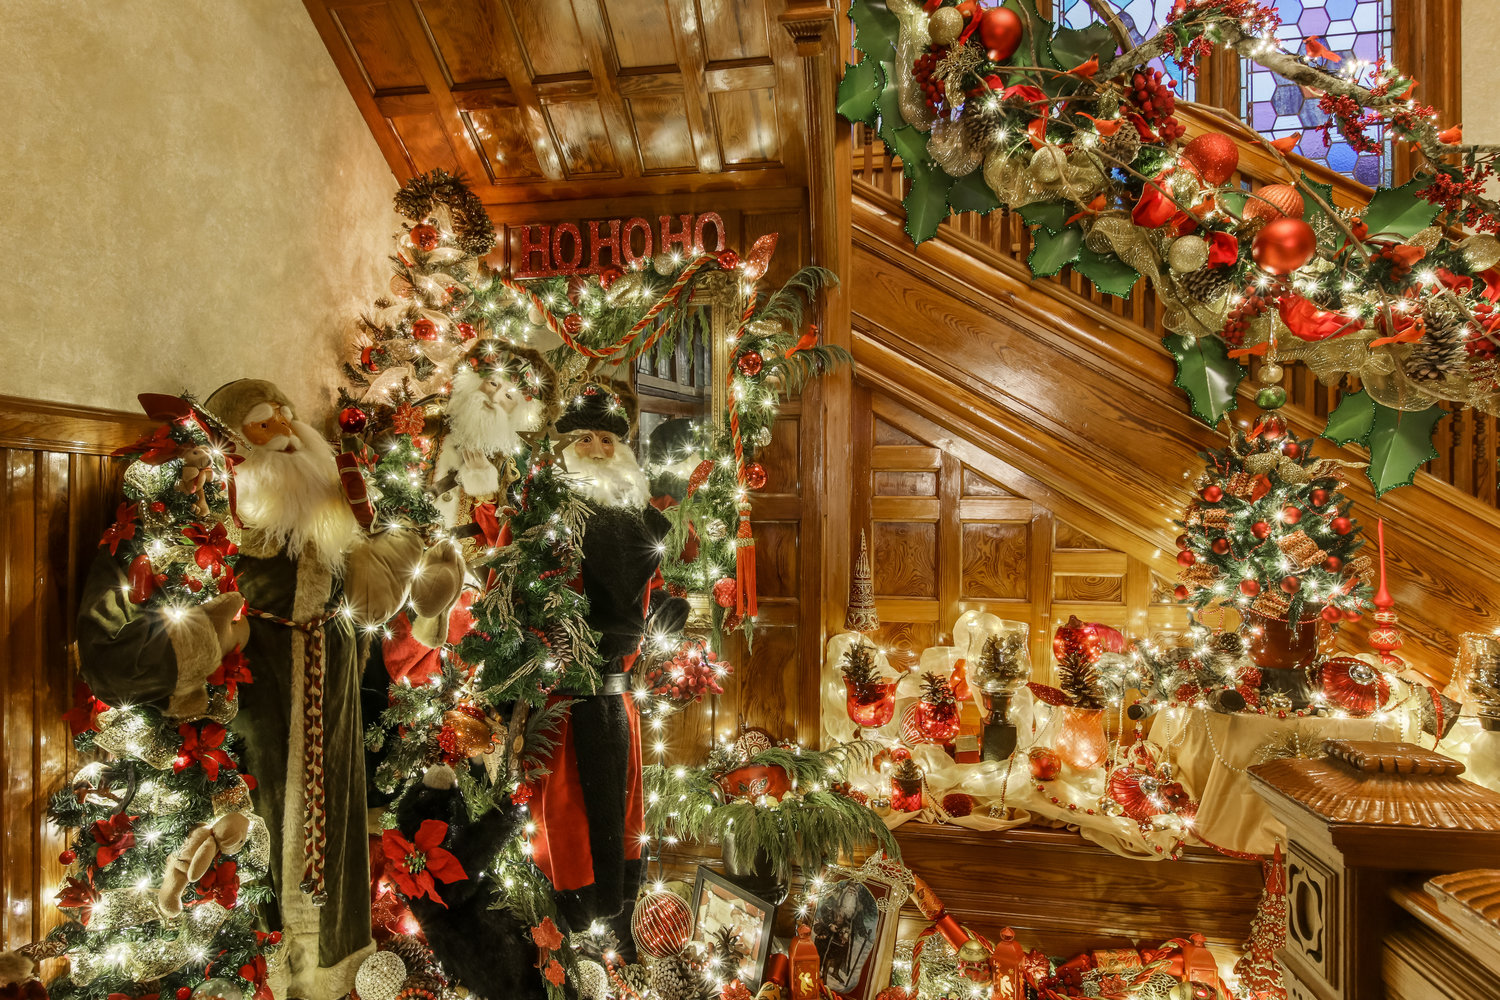 Christmas Tours Nov 15 2018 Jan 15 2019 The Stetson Mansion